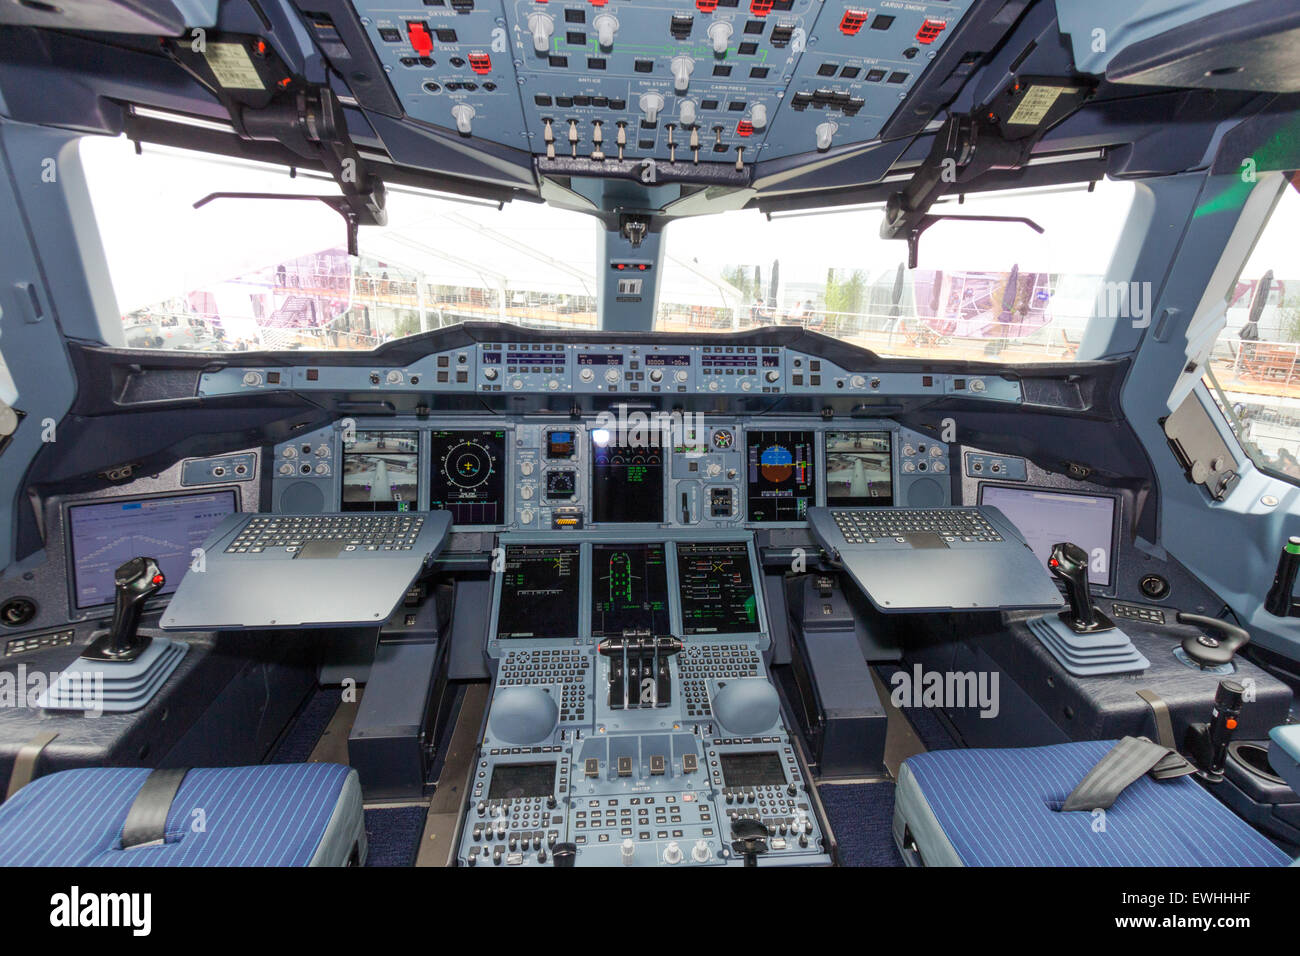 Airbus A380 cockpit. The A380 is the largest passenger airliner in the world. - Stock Image